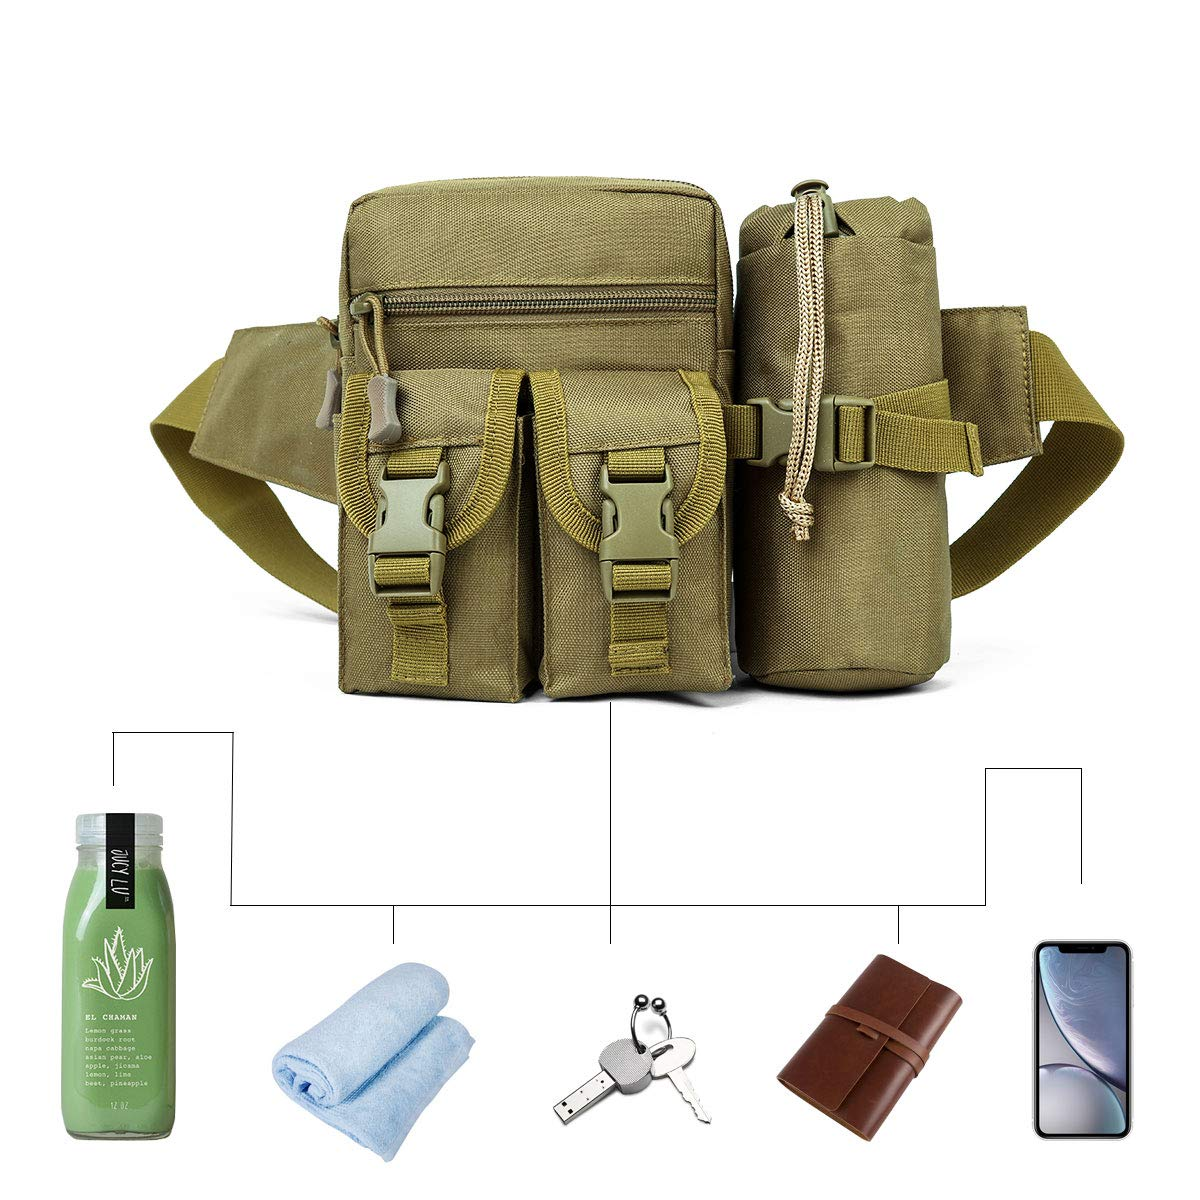 Ationgle Tactical Waist Pack Portable Fanny Pack Outdoor Hiking Travel Large Army Waist Bag Military Waist Pack for Daily Life Cycling Camping Hiking Hunting Fishing Shopping